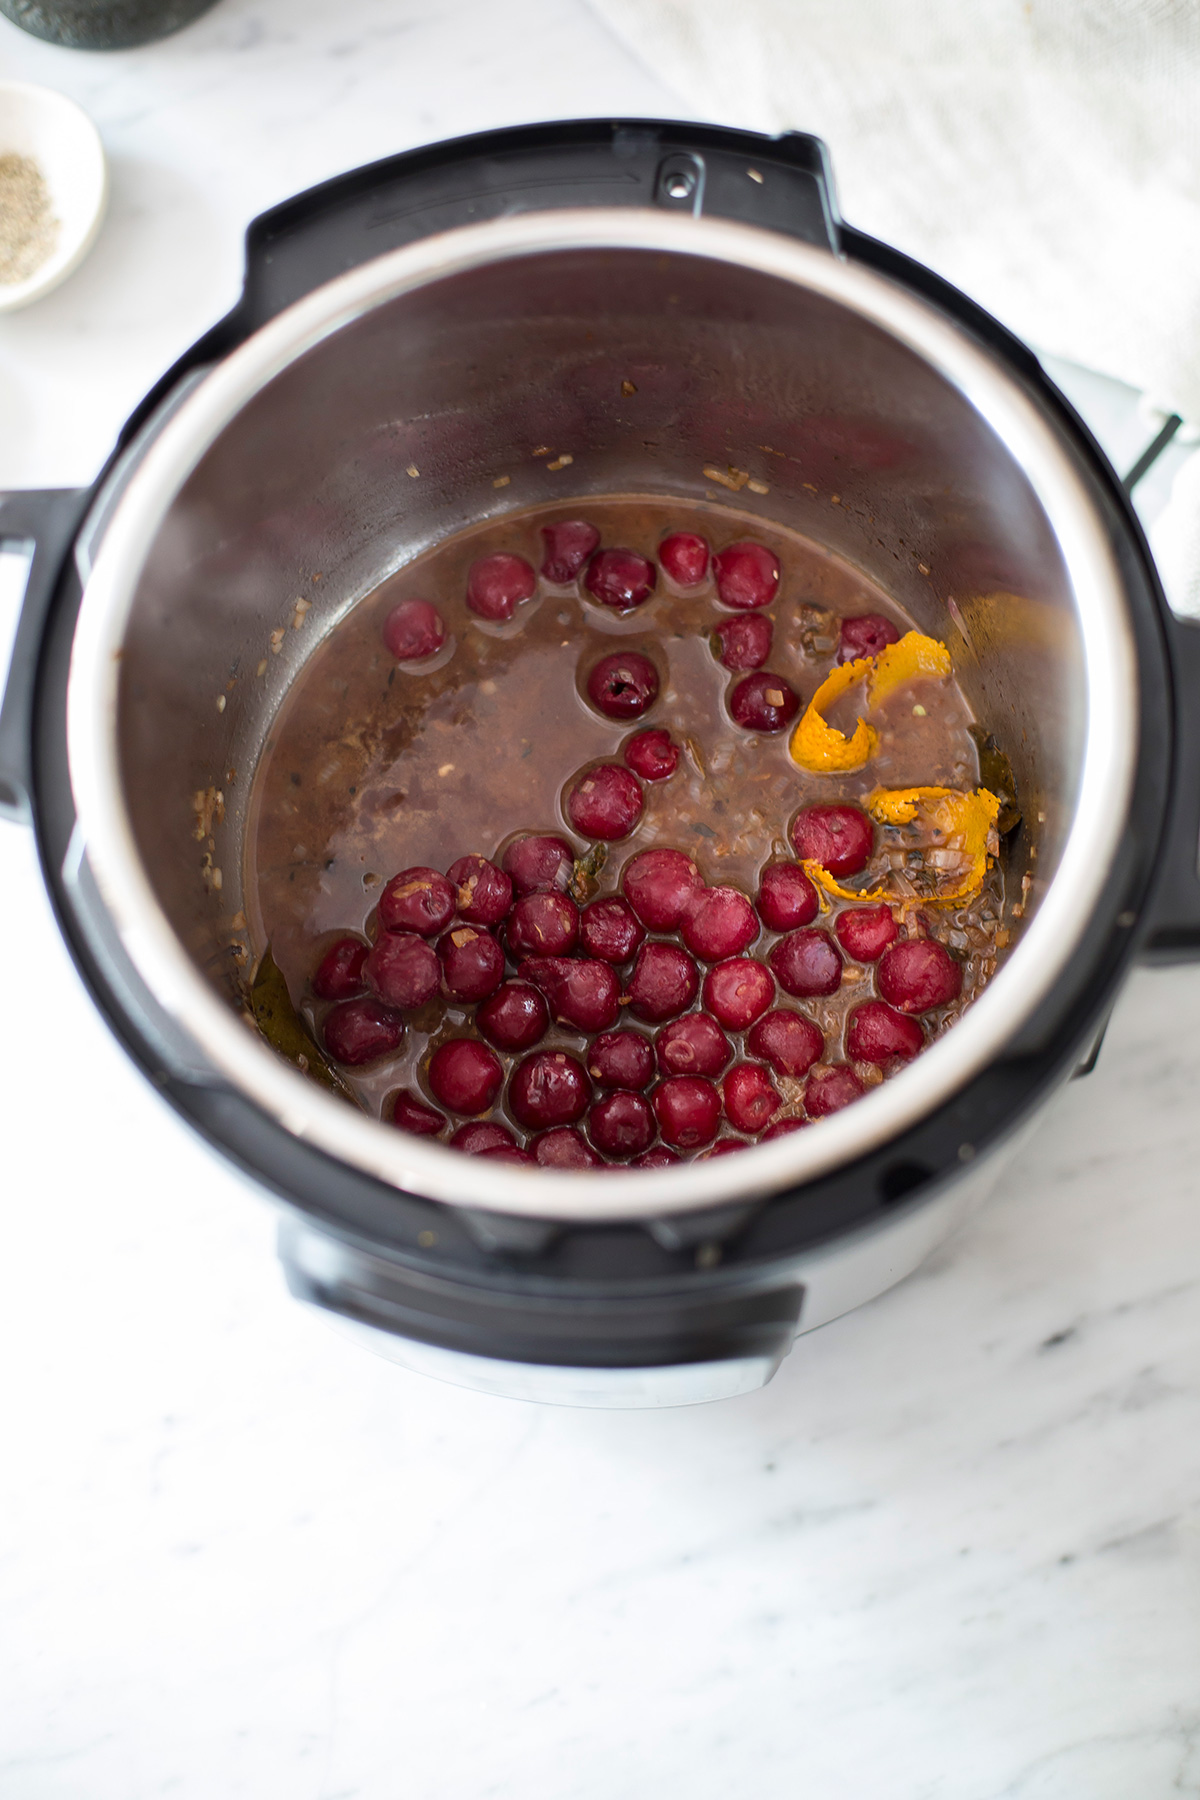 Confit duck legs with cherry sauce made in the Instant Pot